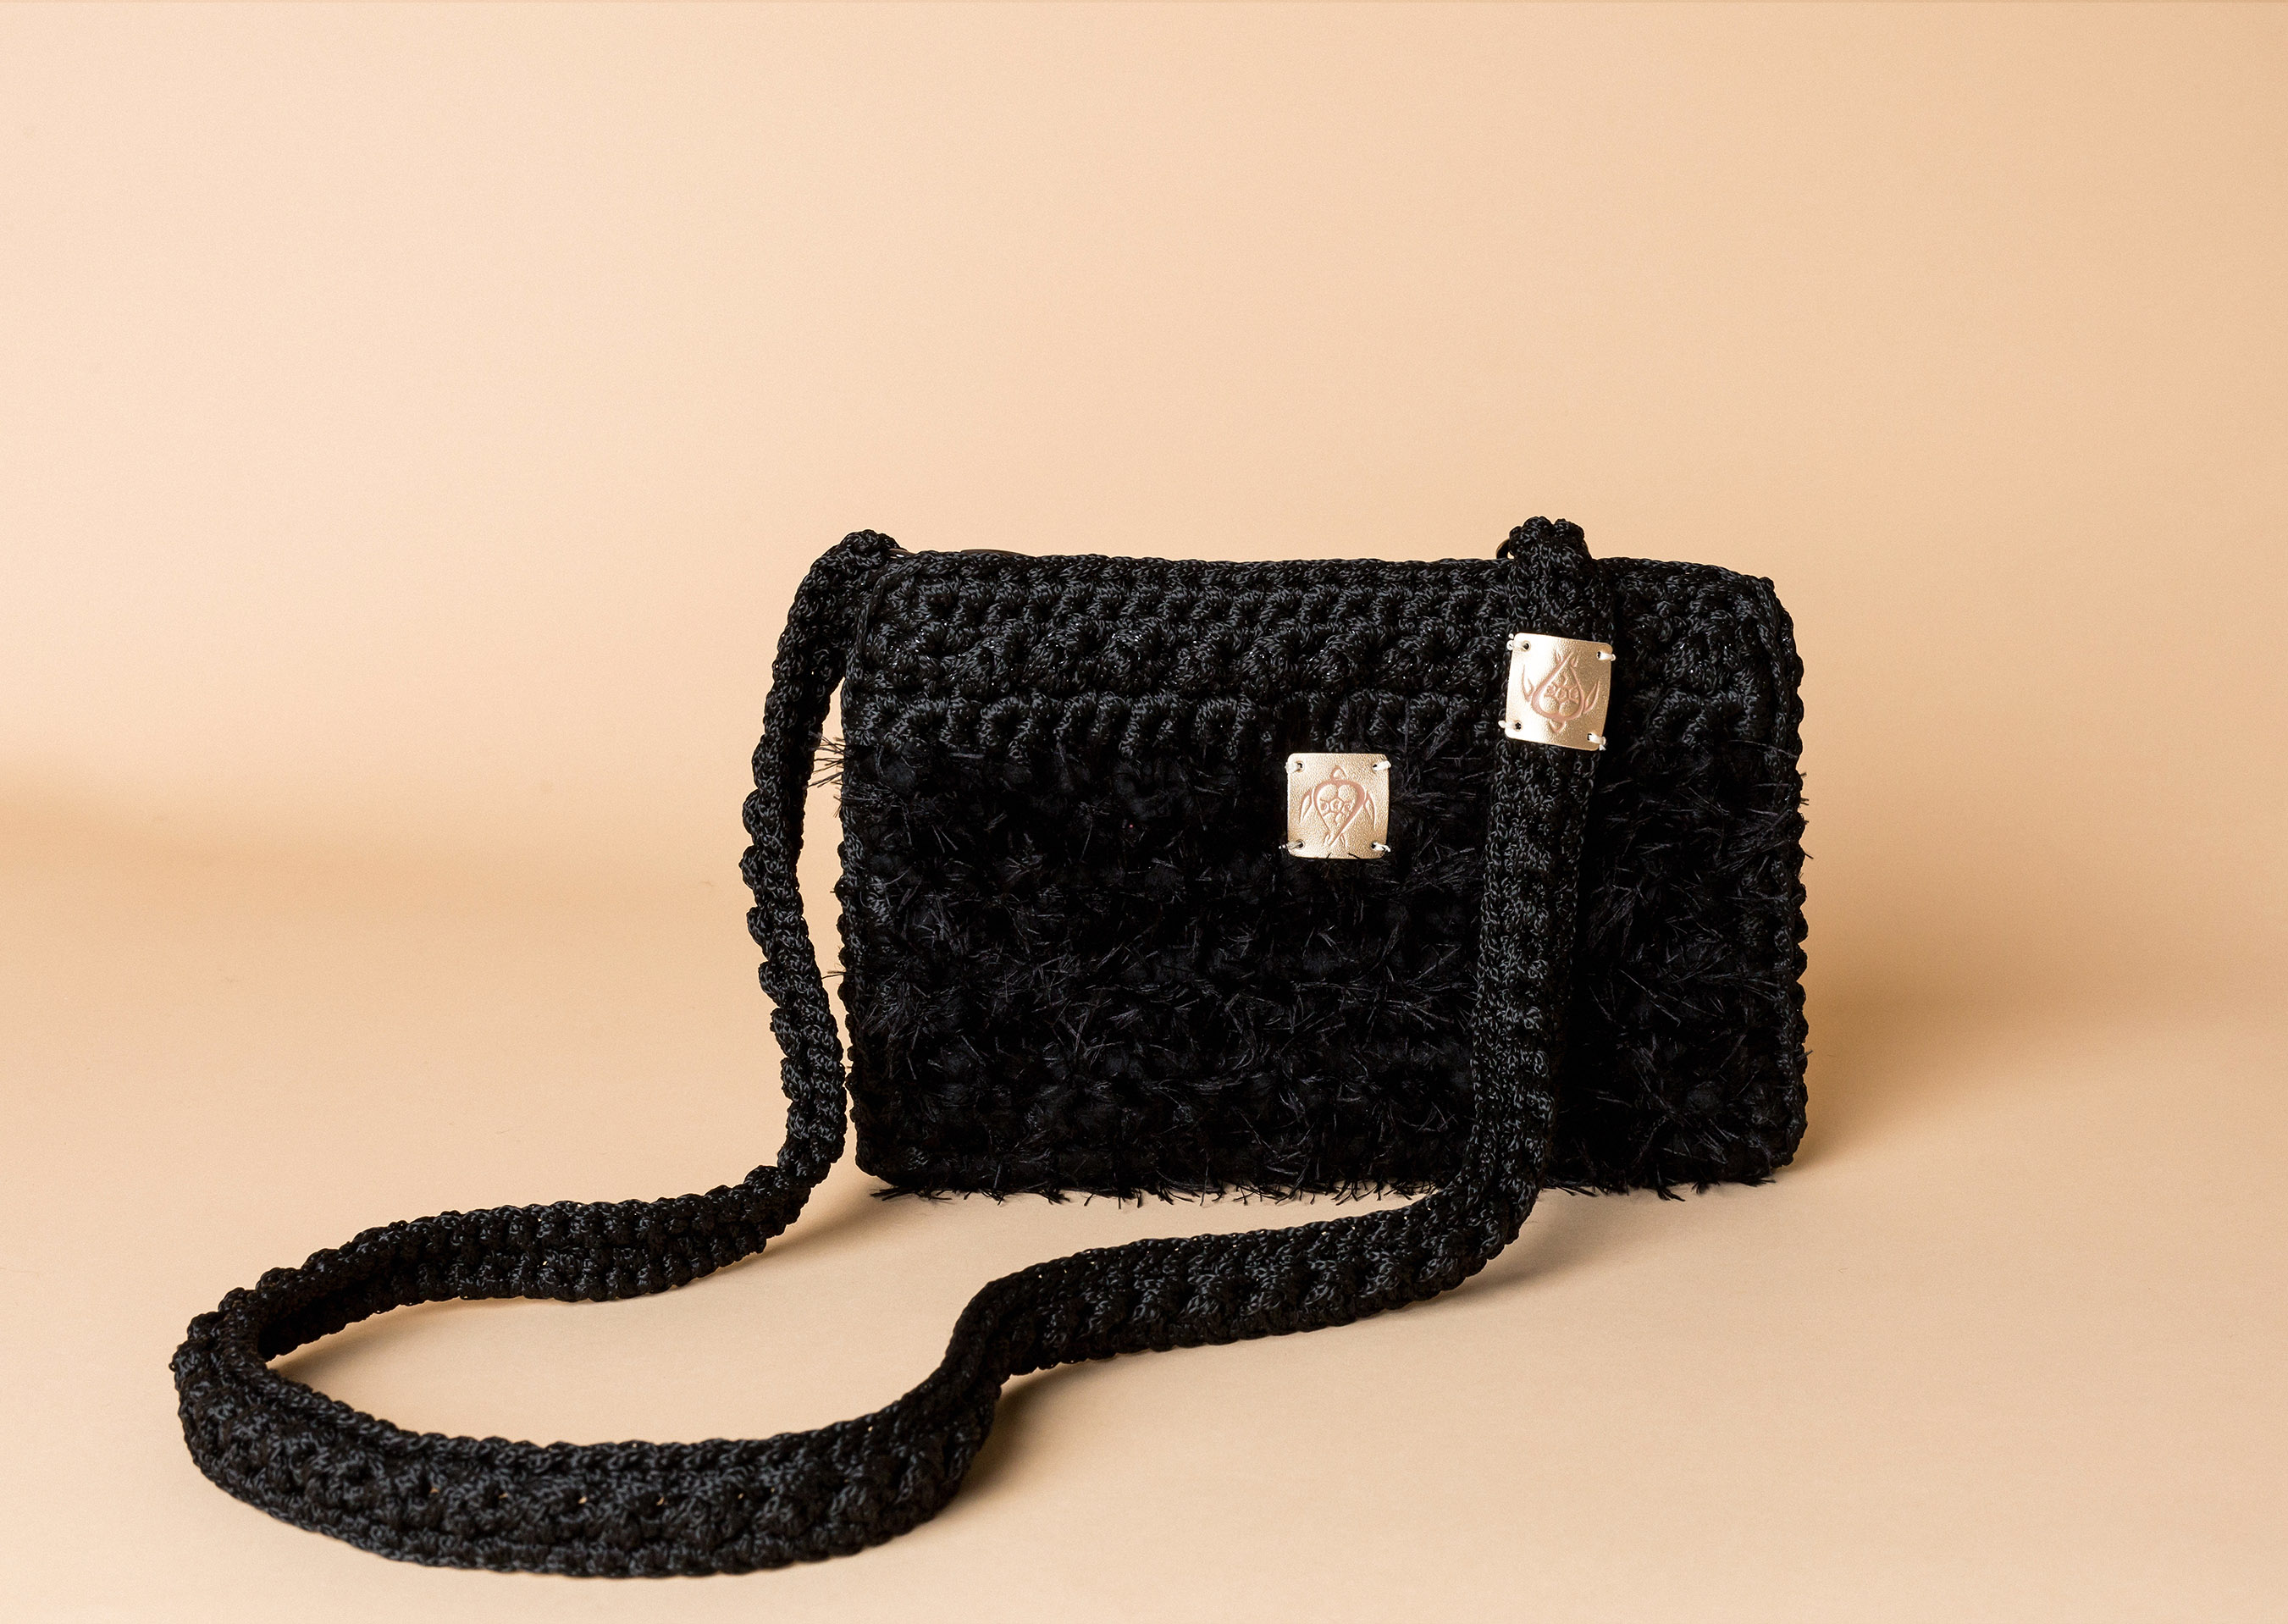 knitted bag petit in black